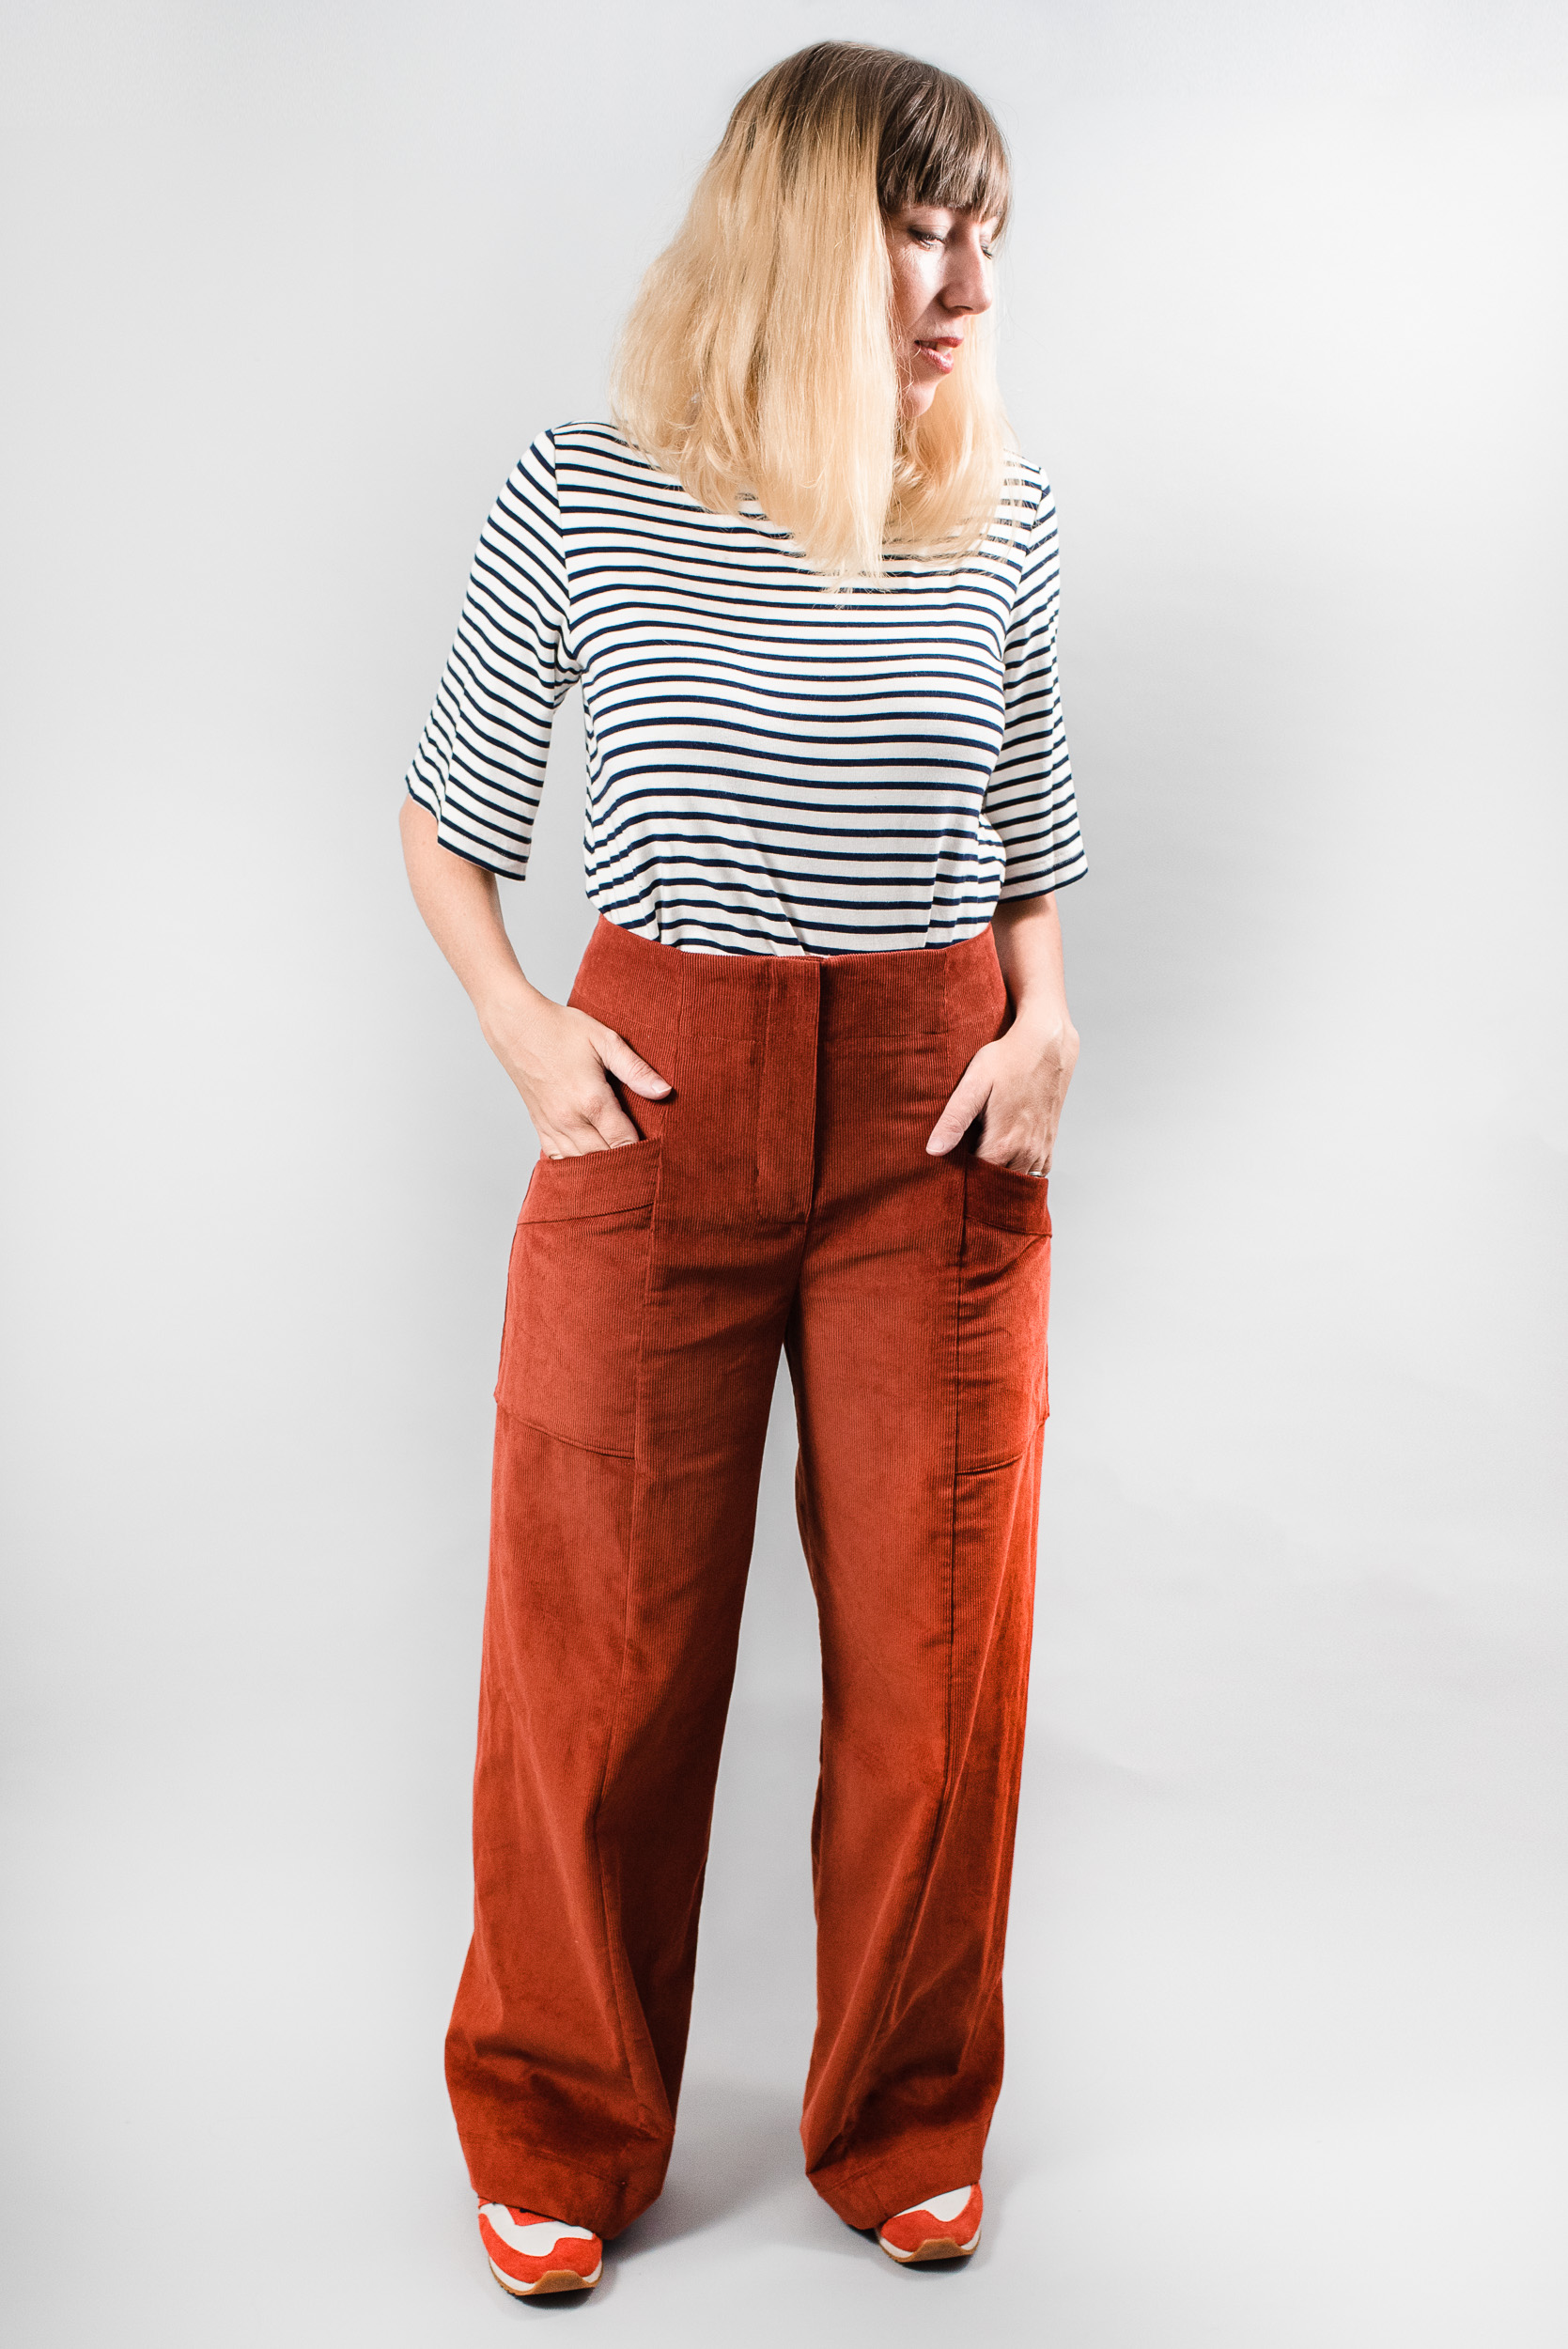 Parasol-high-waisted-trousers-pdf-sewing-pattern05.jpg